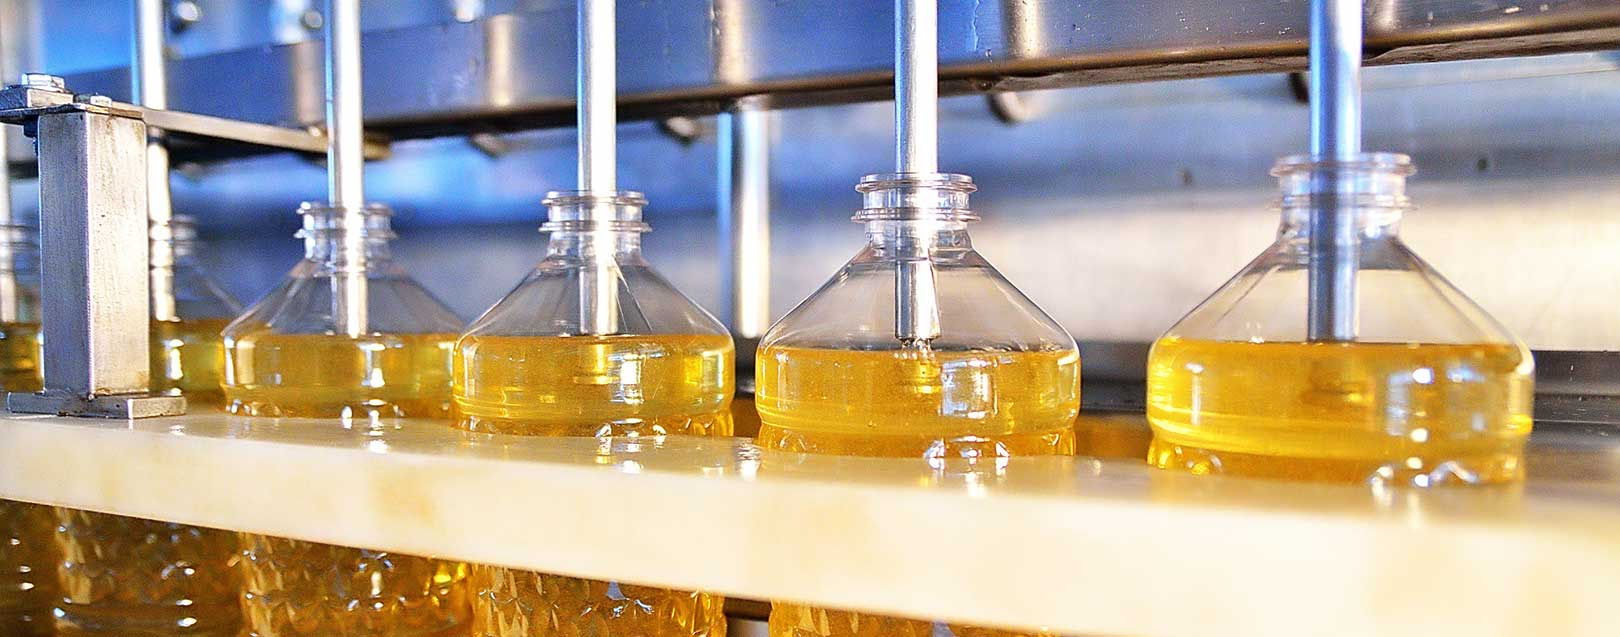 Local oilseed crushers want government to raise import duties on edible oils